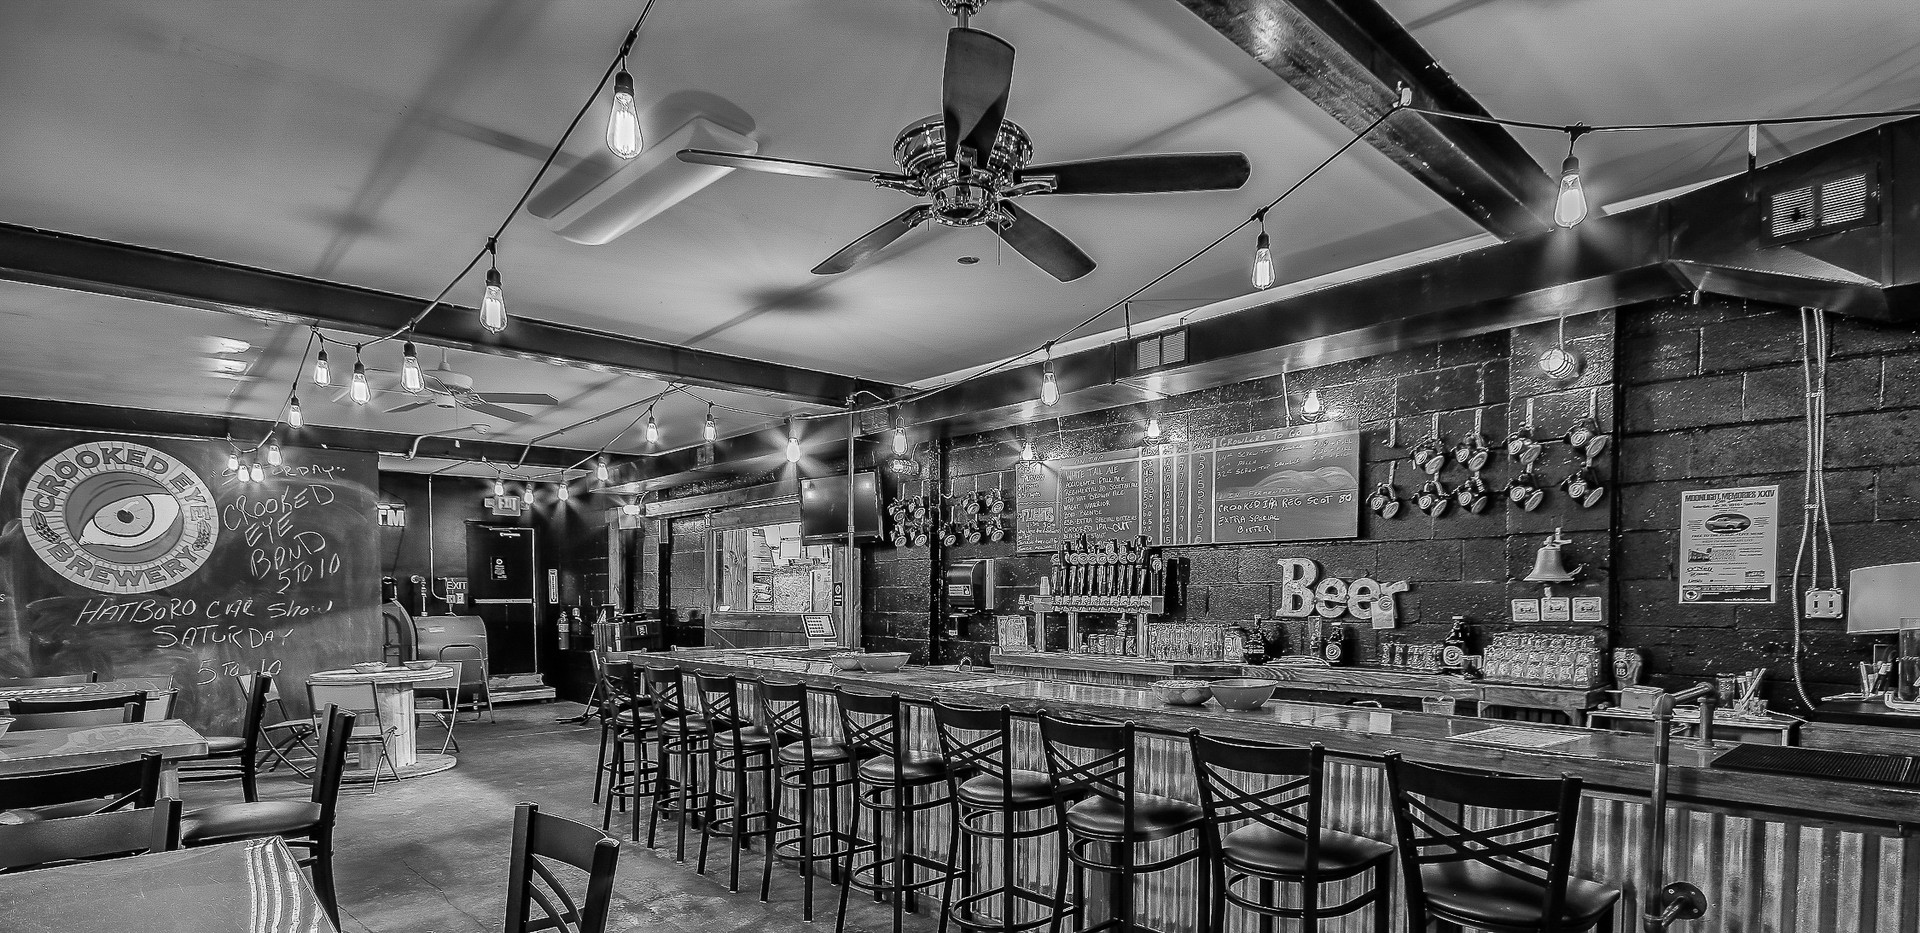 Brewery Bar Black and White